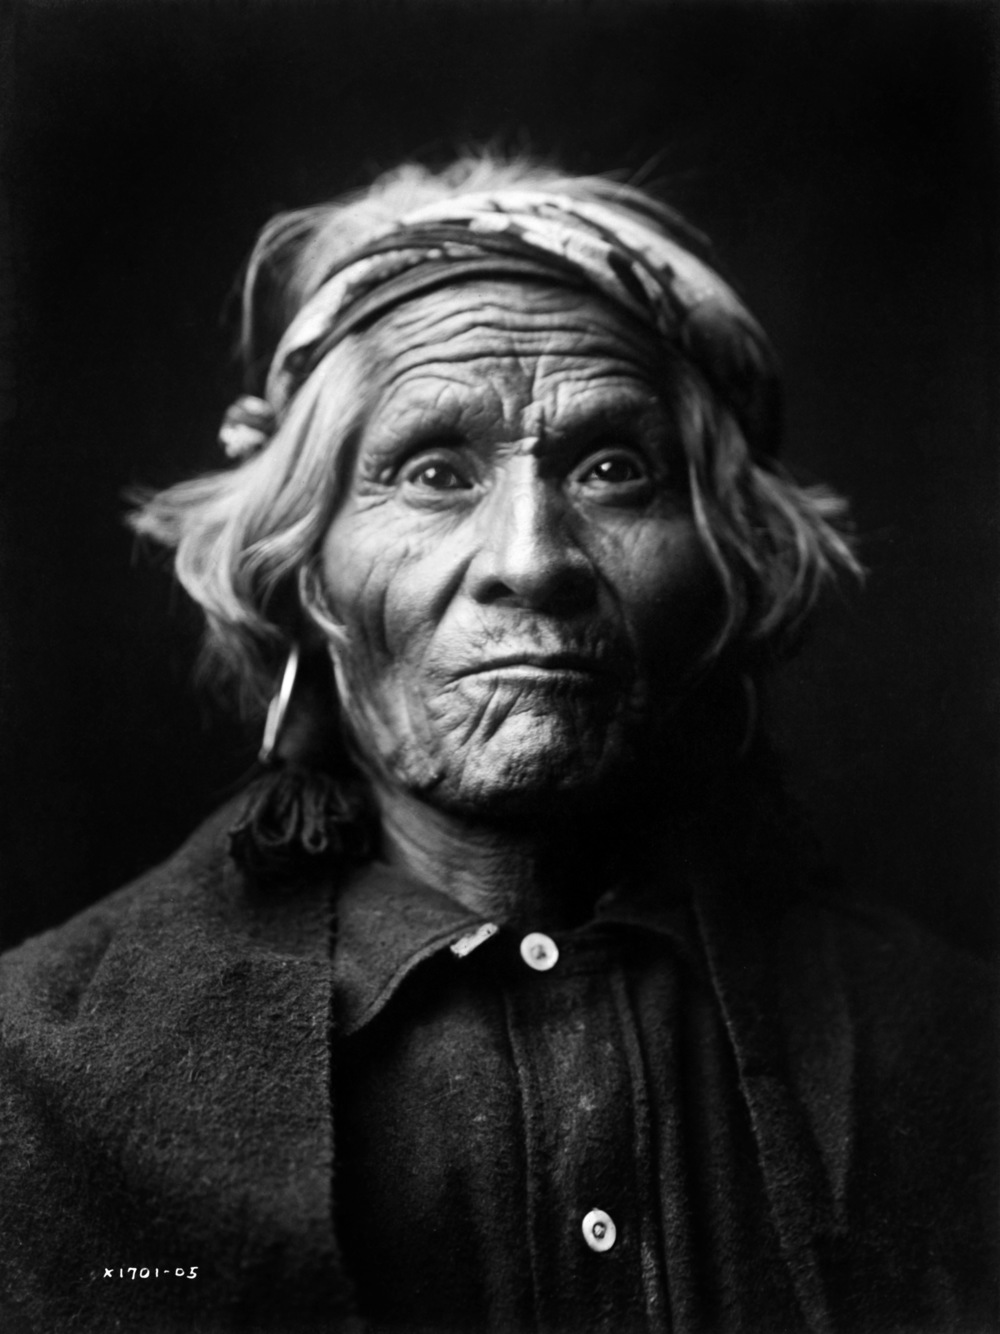 Edward_S._Curtis,_Wyemah,_Taos_Indian,_1905.jpg